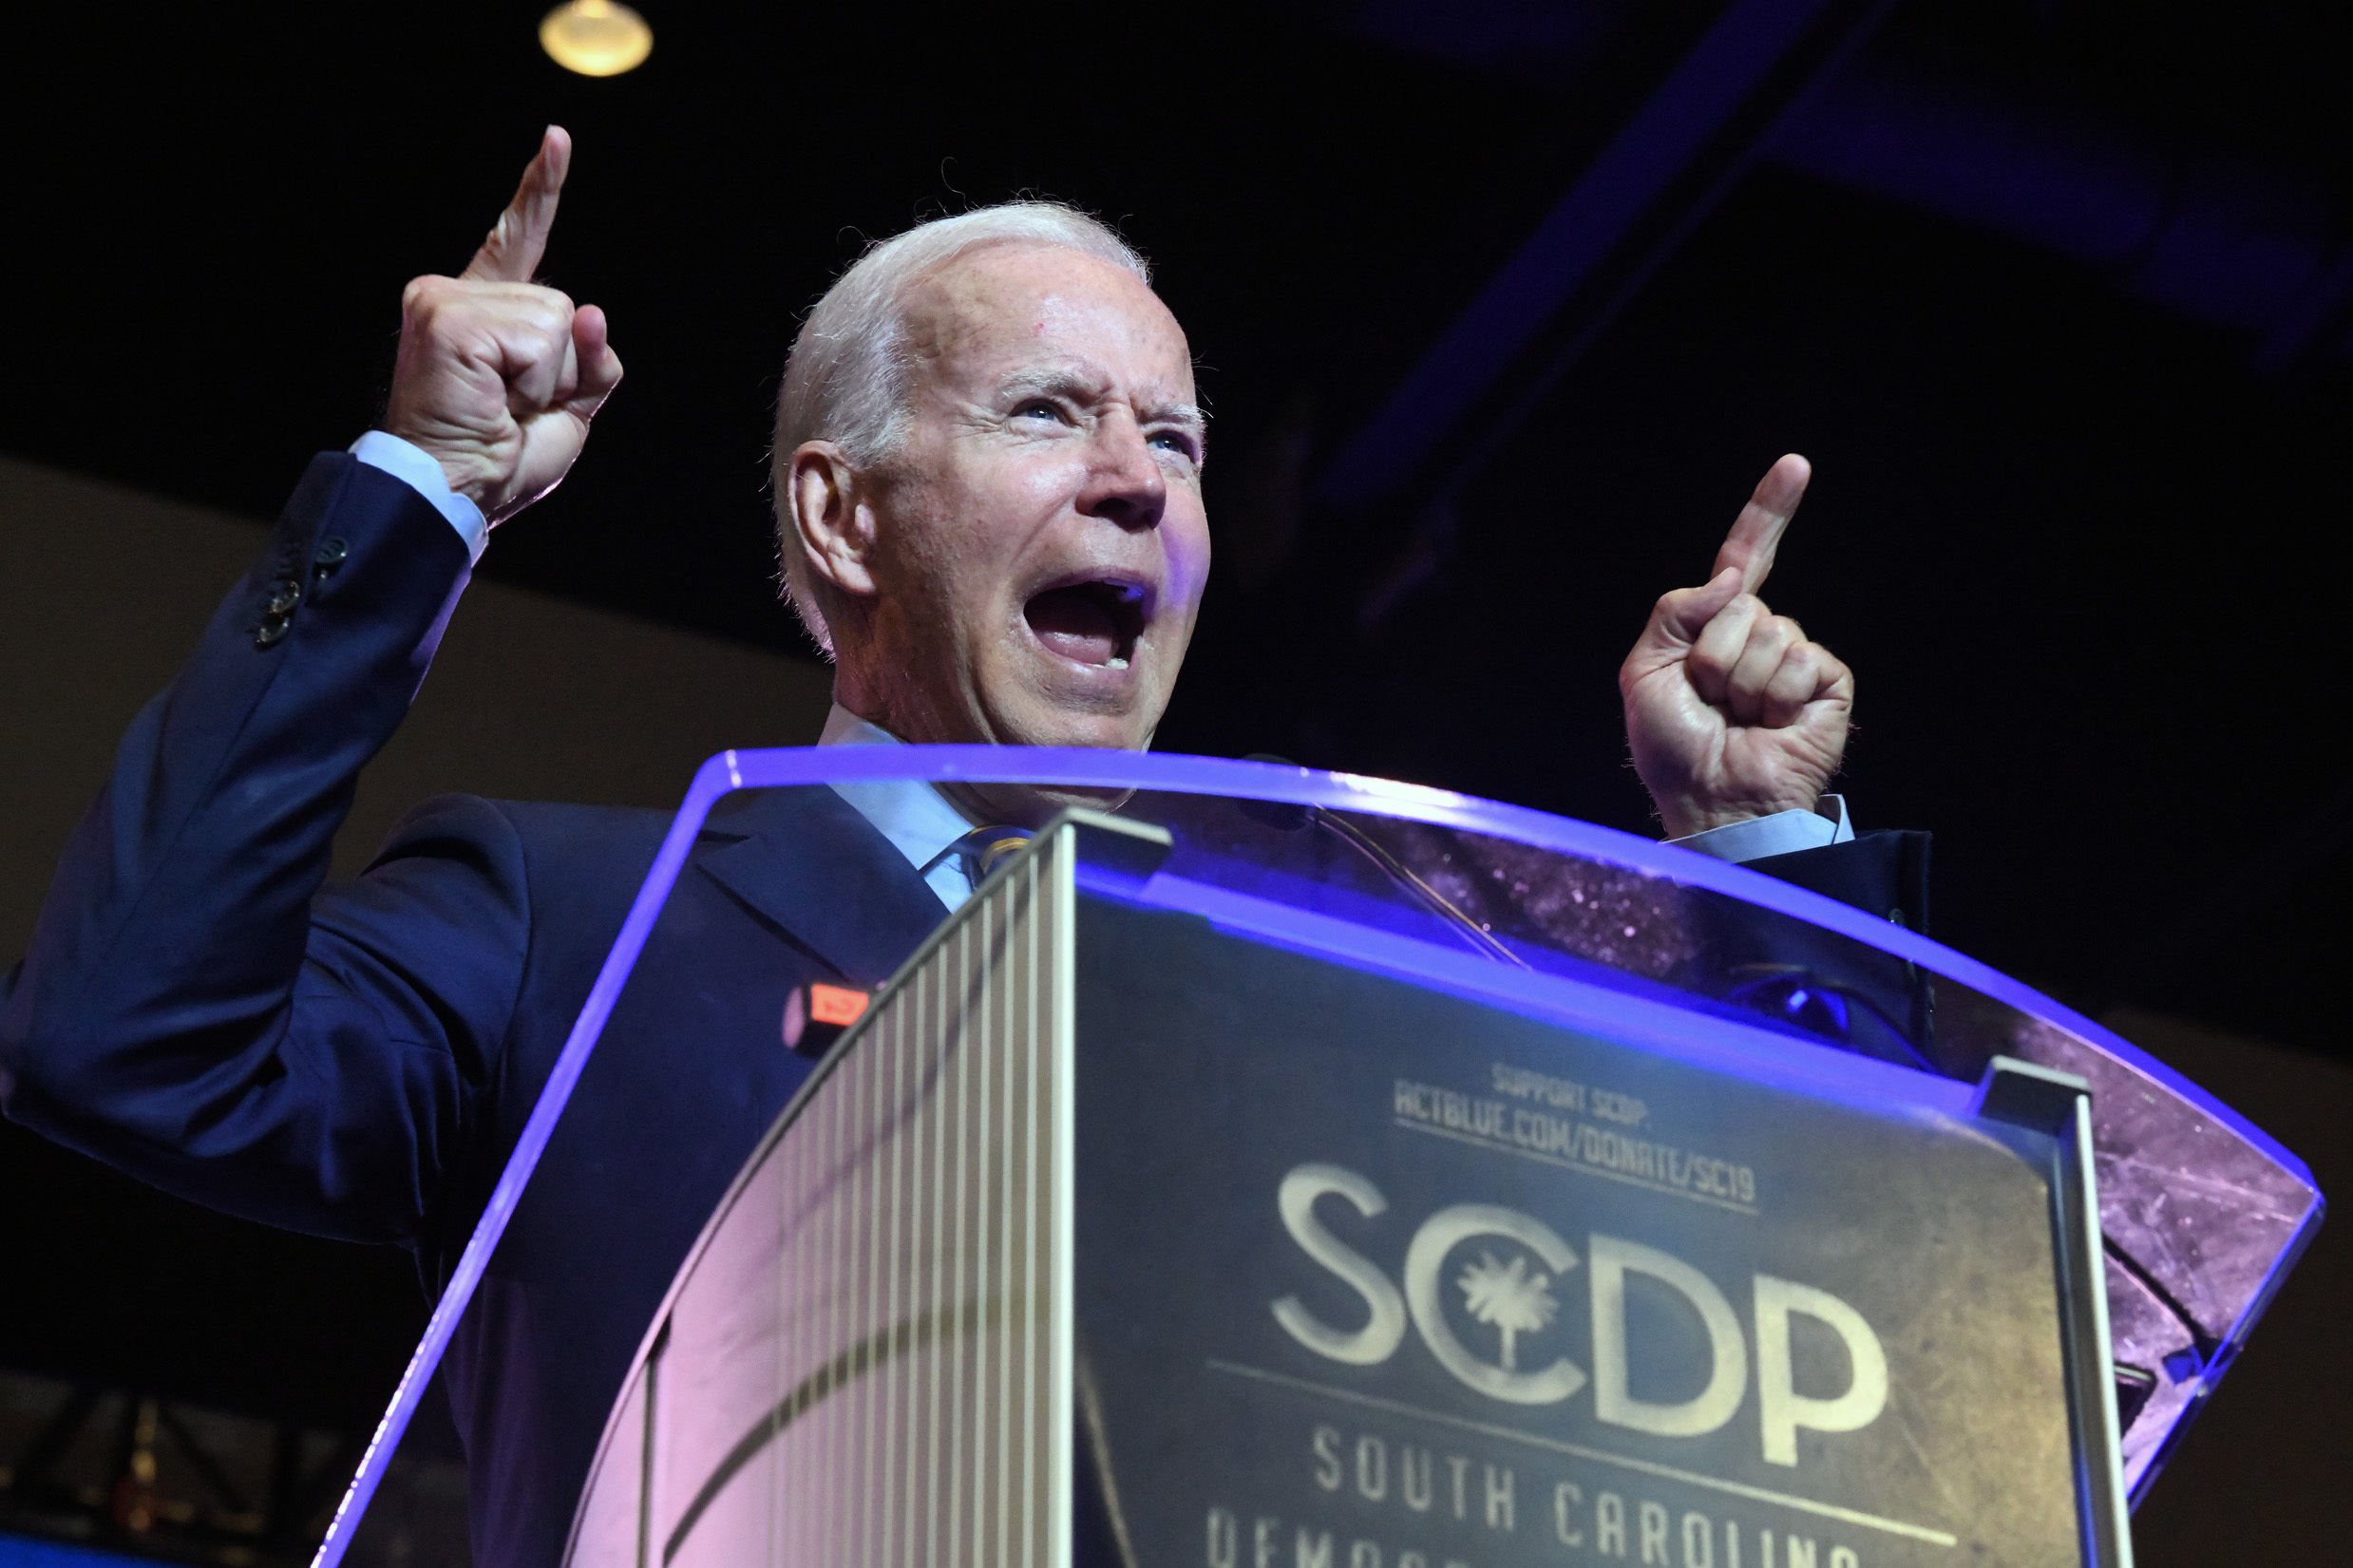 Biden: Congress should immediately make Dreamers citizens